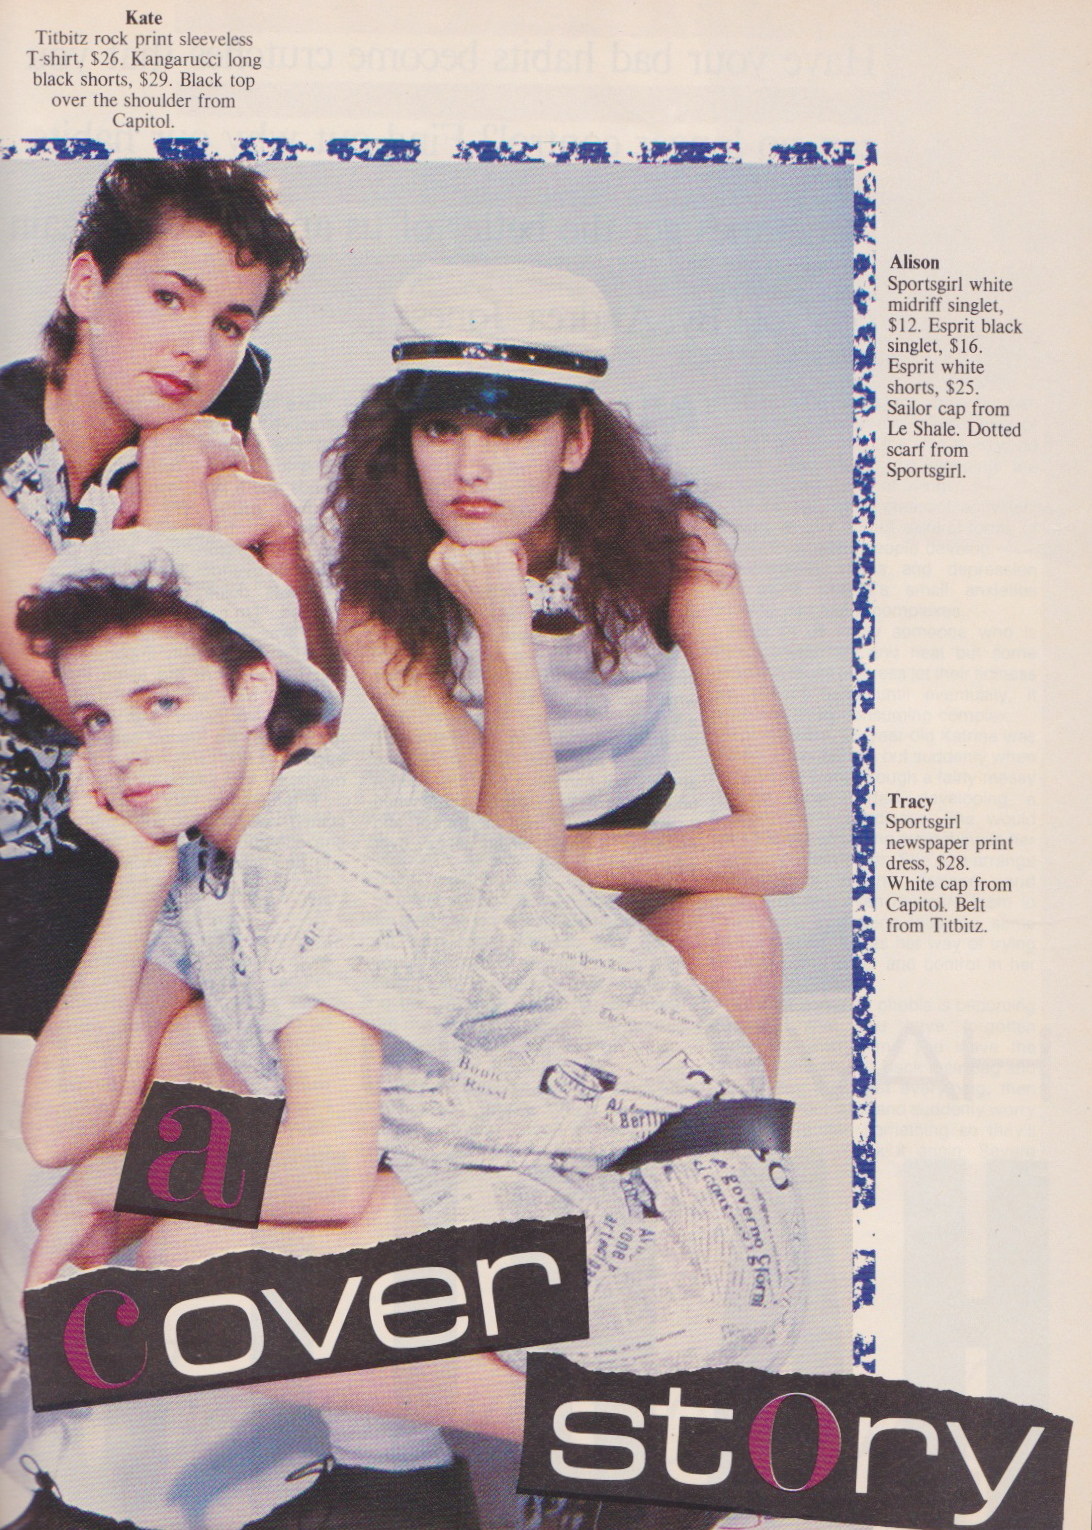 Dolly Covergirl Competition | 1984 Finalists Editorial 04.jpeg